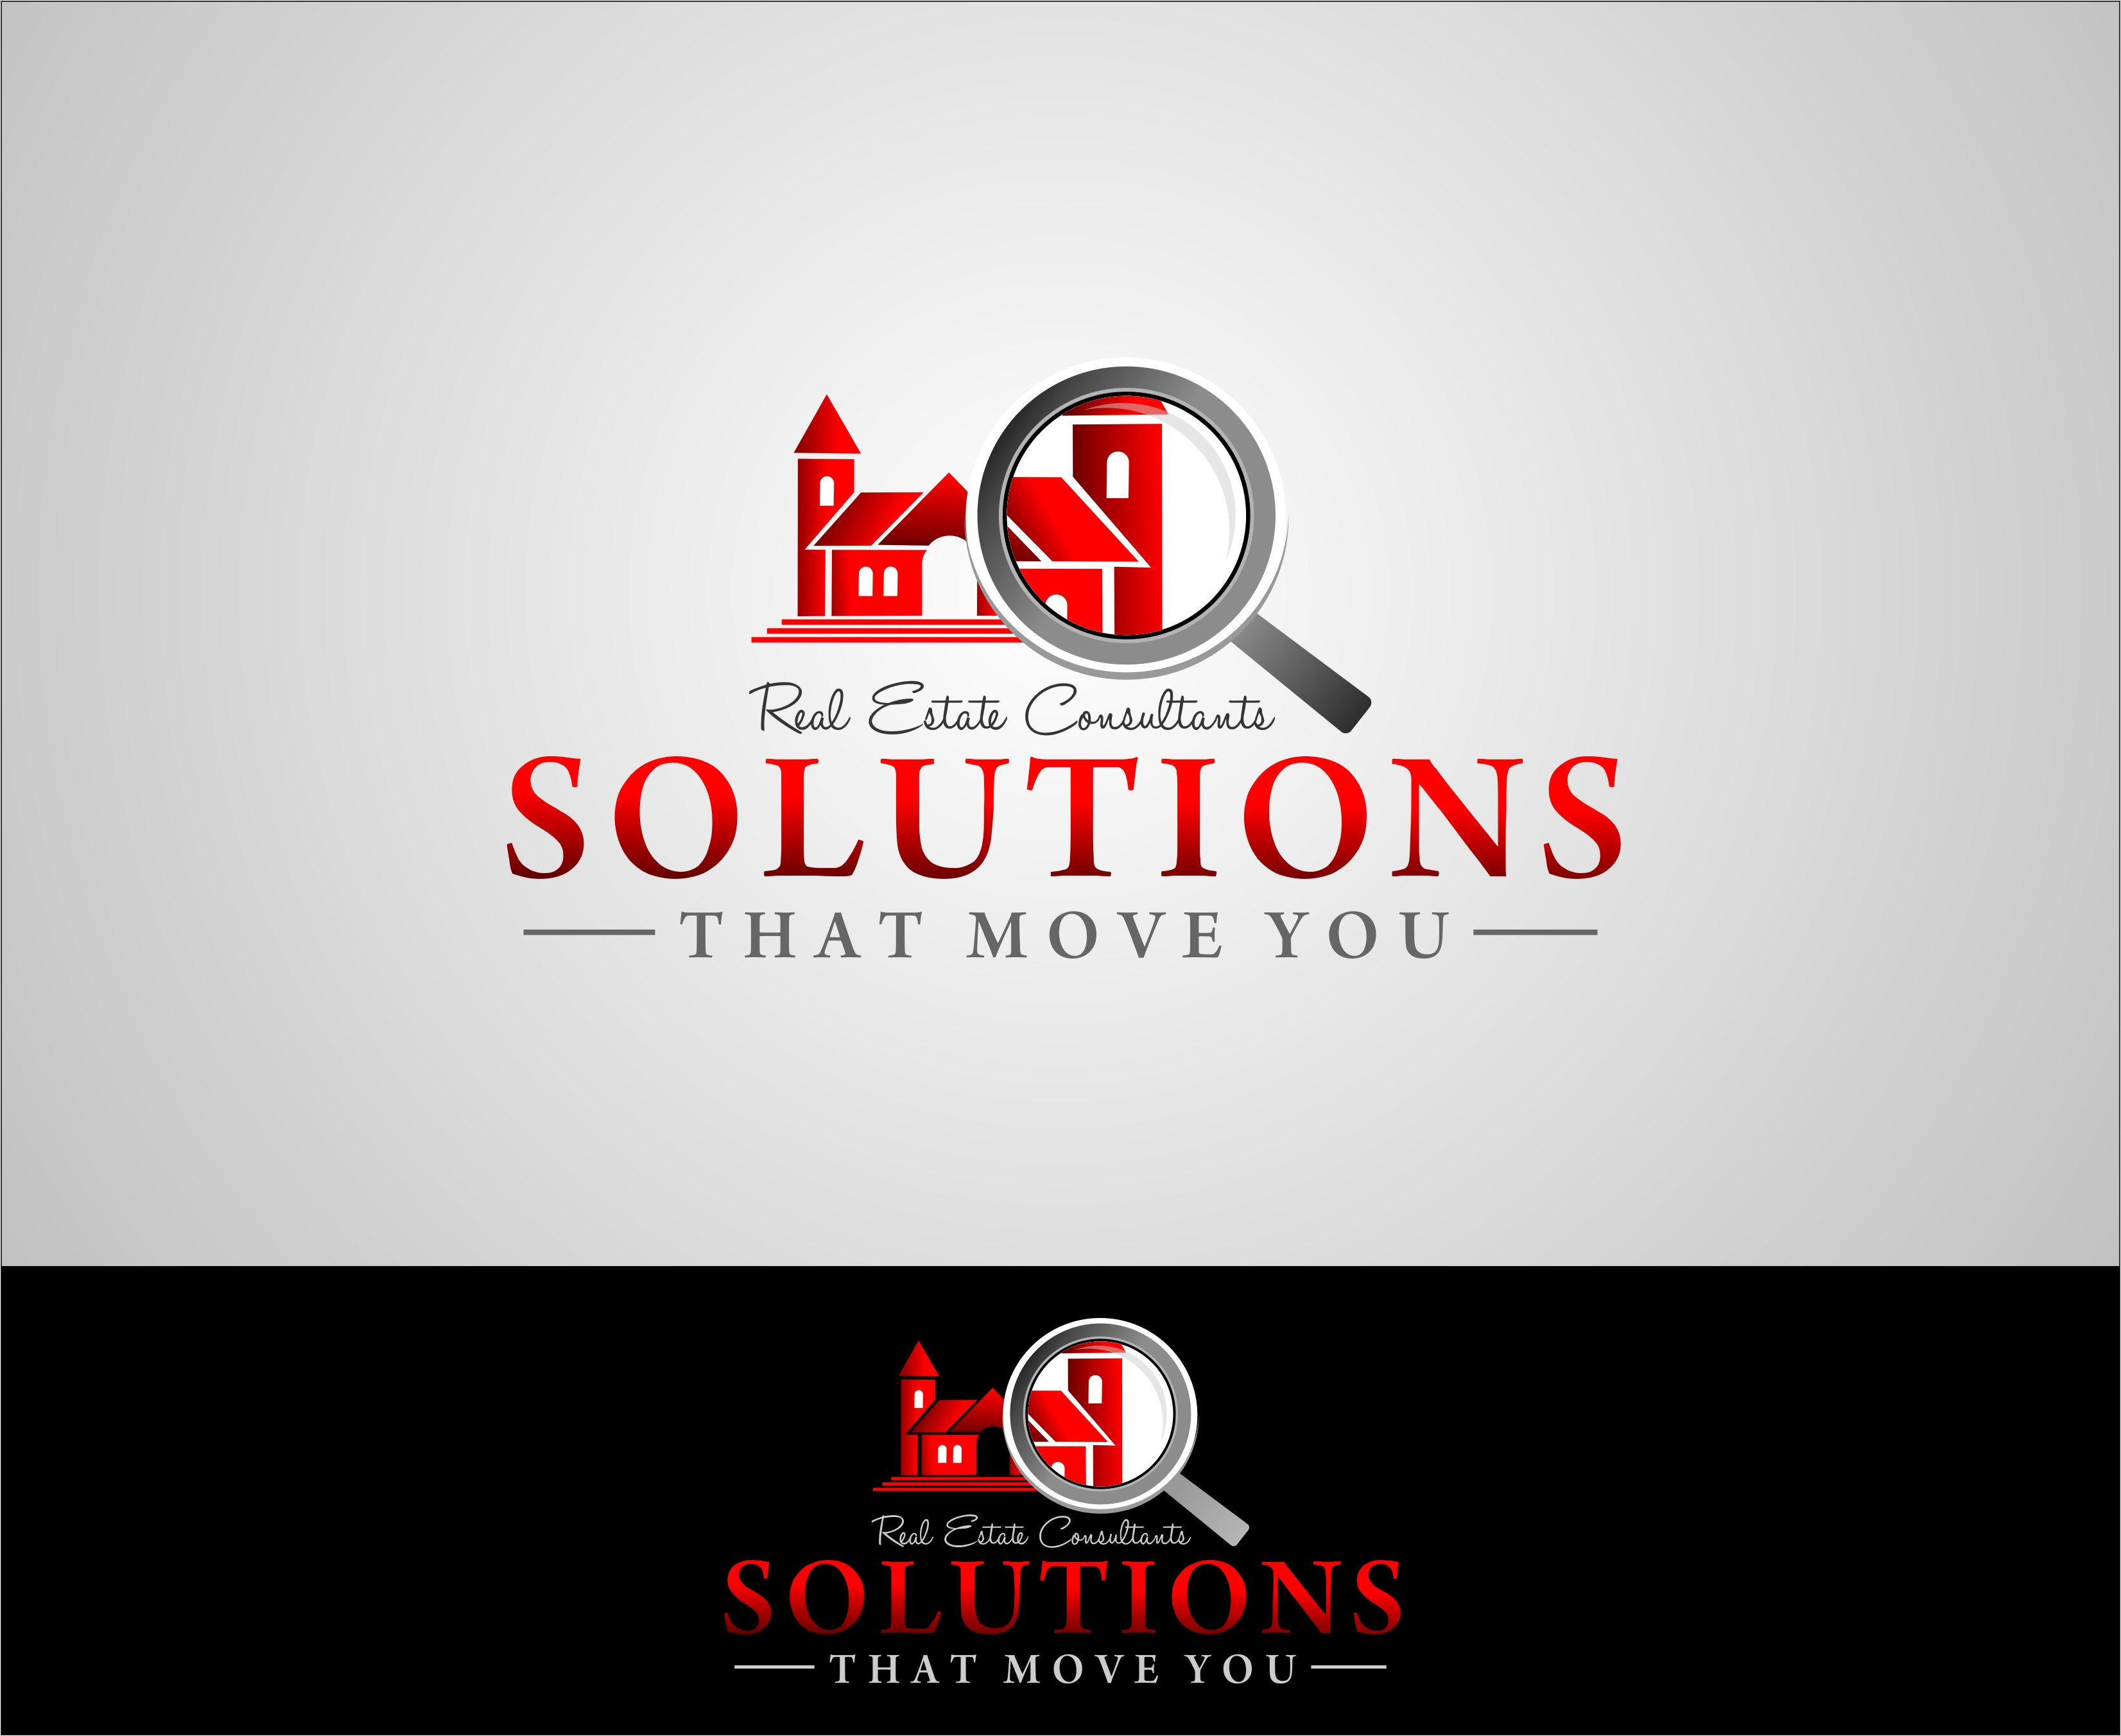 Logo Design by Mhon_Rose - Entry No. 45 in the Logo Design Contest Imaginative Logo Design for Solutions That Move You.